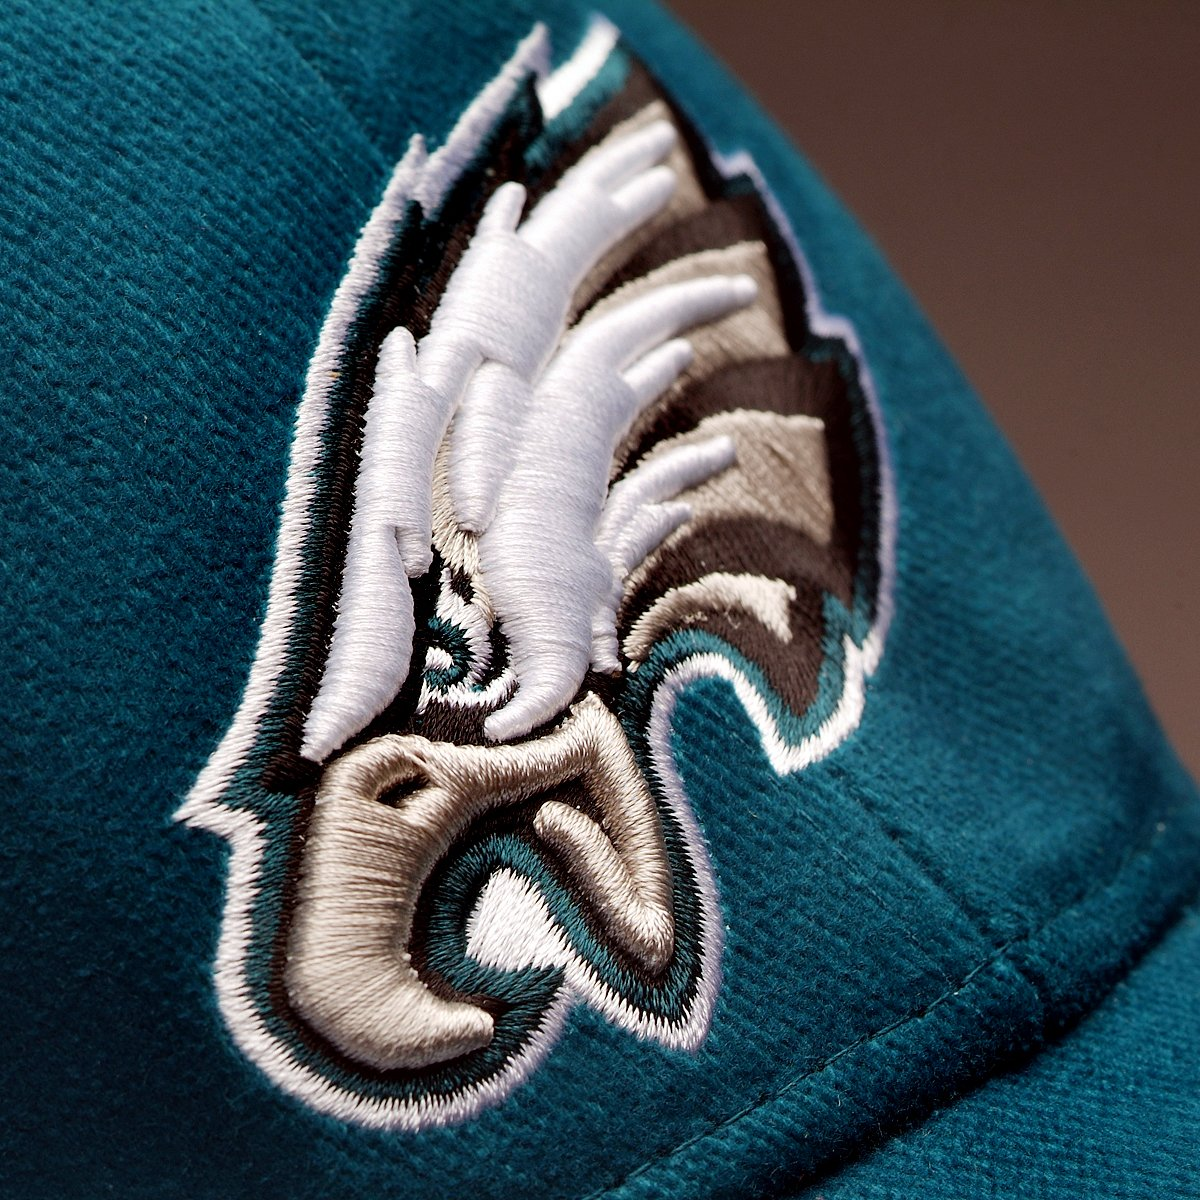 Lightwear NFL Philadelphia Eagles Dual LED Headlight Adjustable Hat